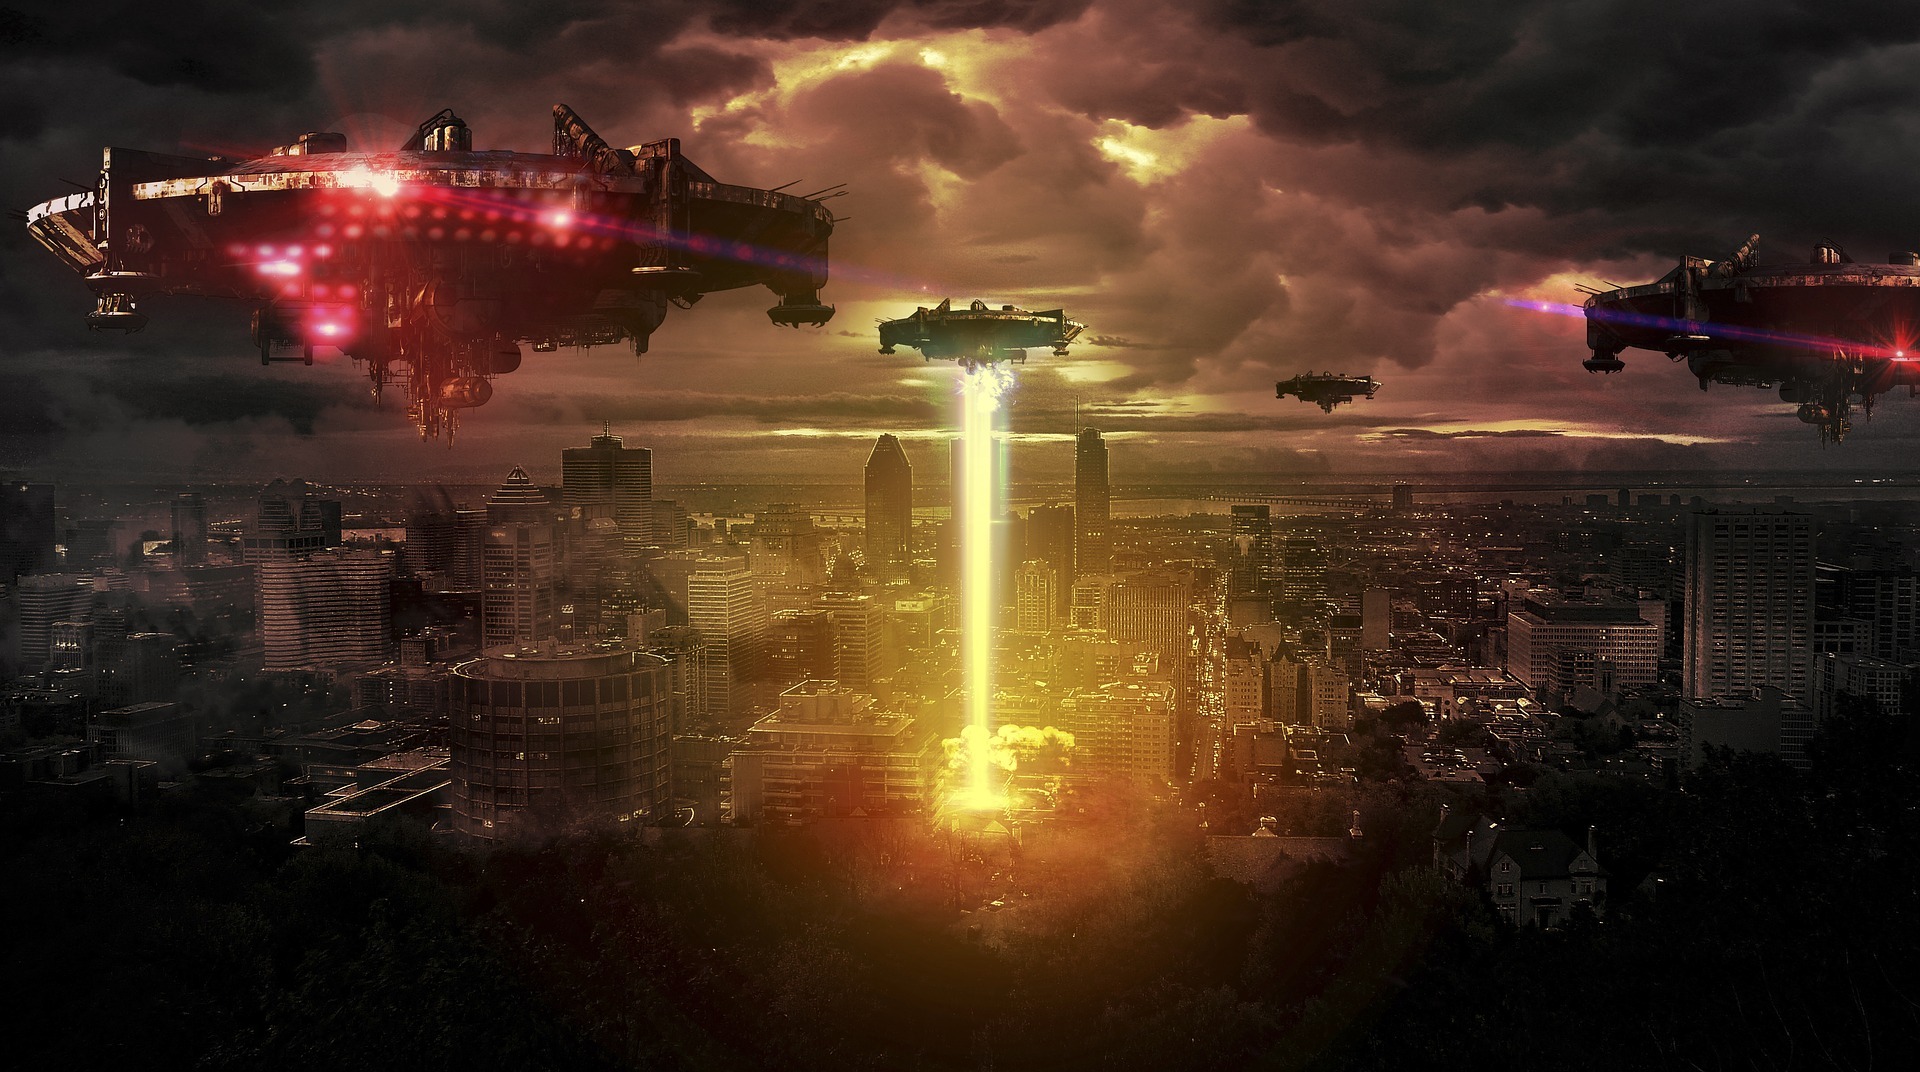 The Most Likely Way That Aliens Would Attack Us